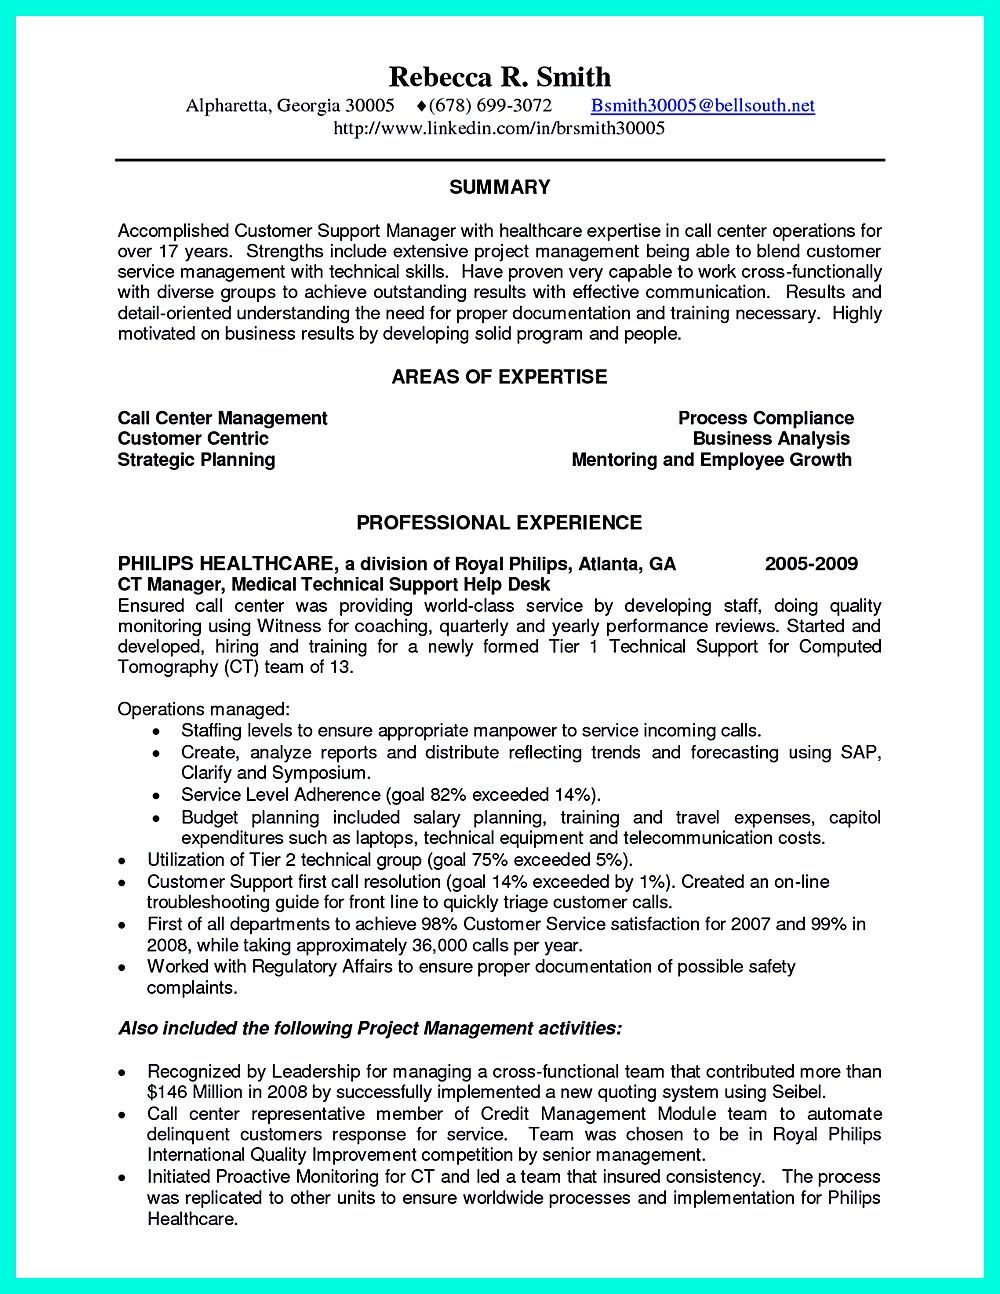 resume How Many Years To Include On Resume csr resume or customer service representative include the job aspects where it showcase your